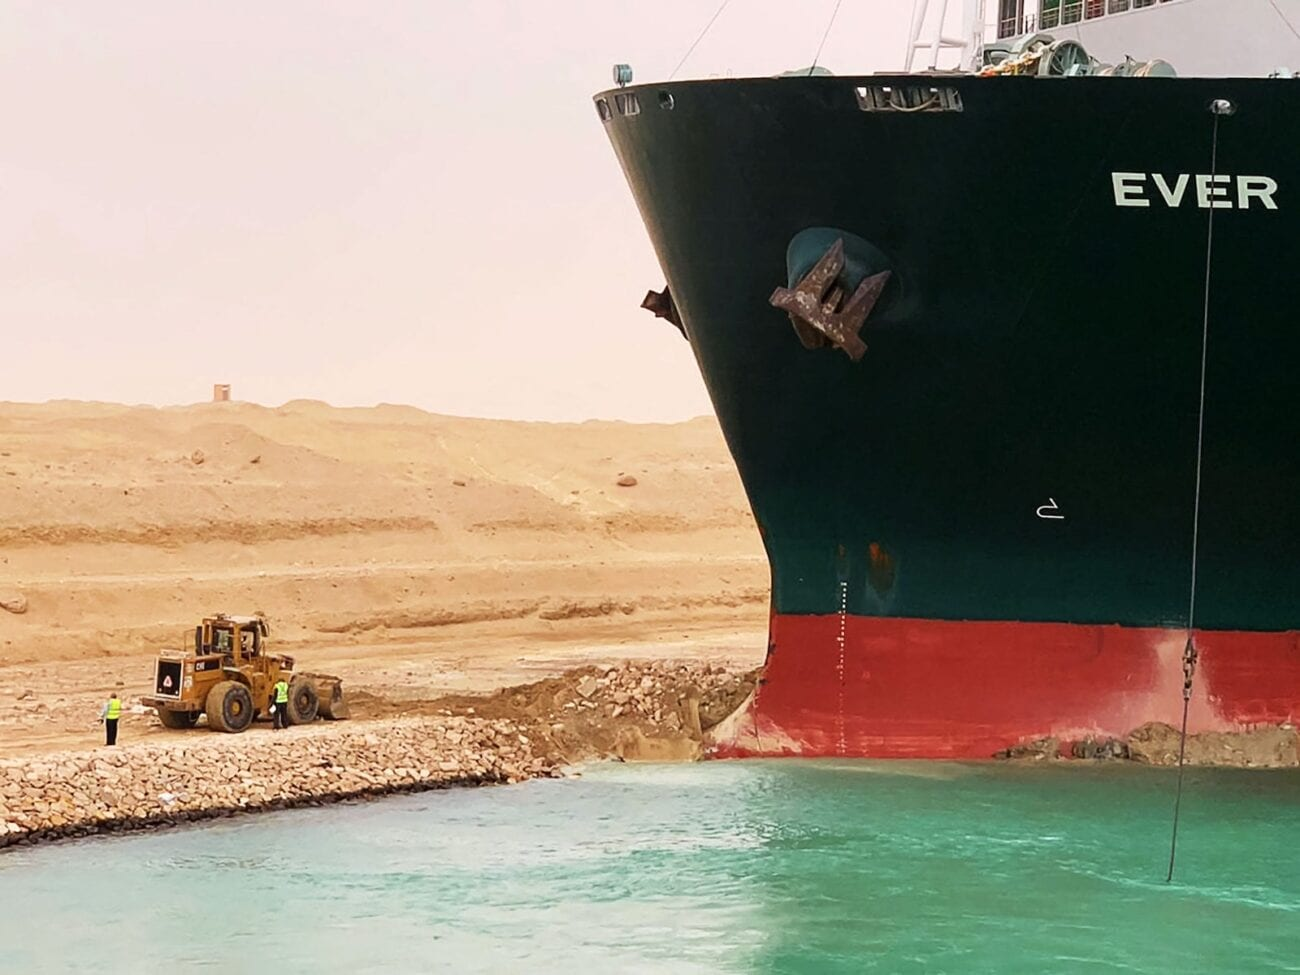 What caused the recent crisis in Suez Canal? Here's everything we know about what went down in the Suez Canal and The Ever Green.